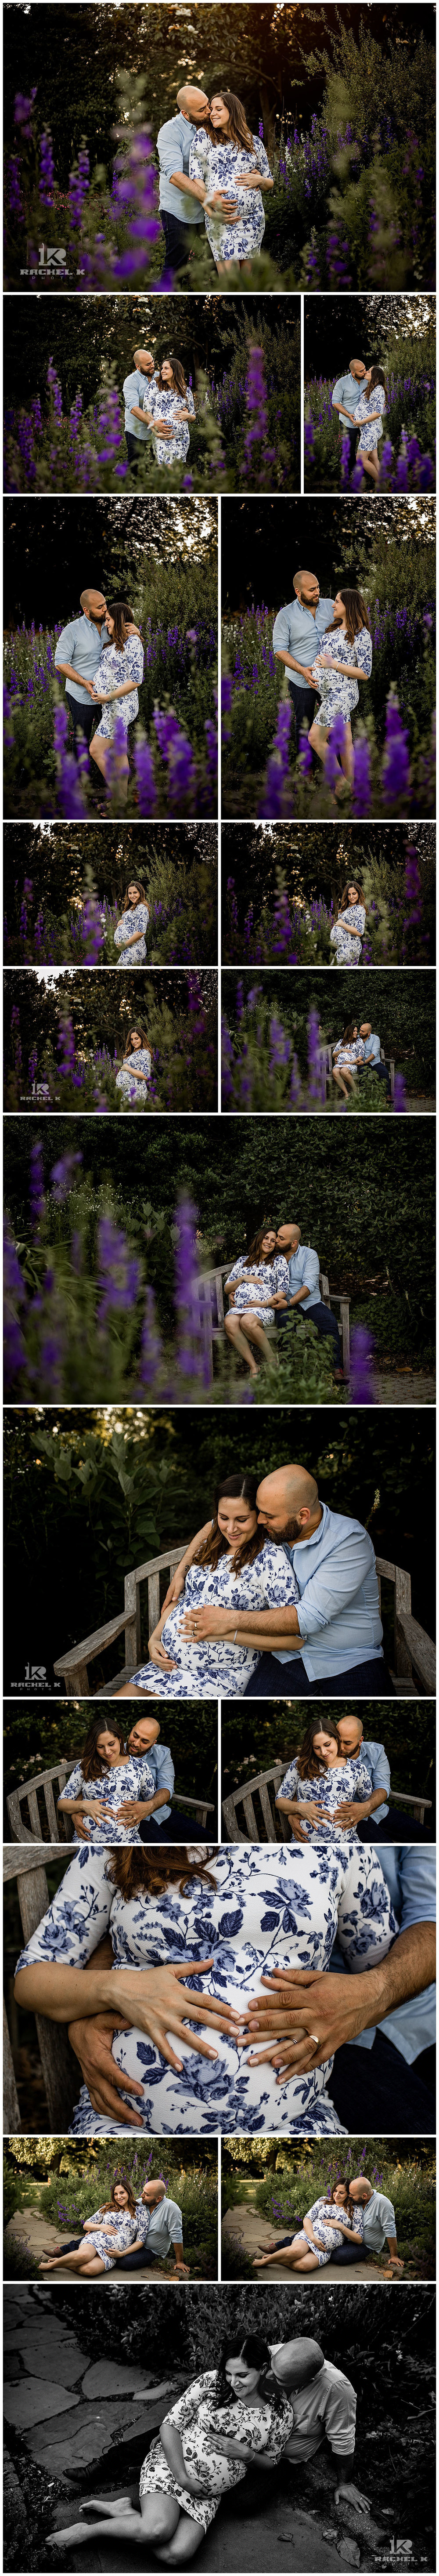 Alexandria Virginia maternity session